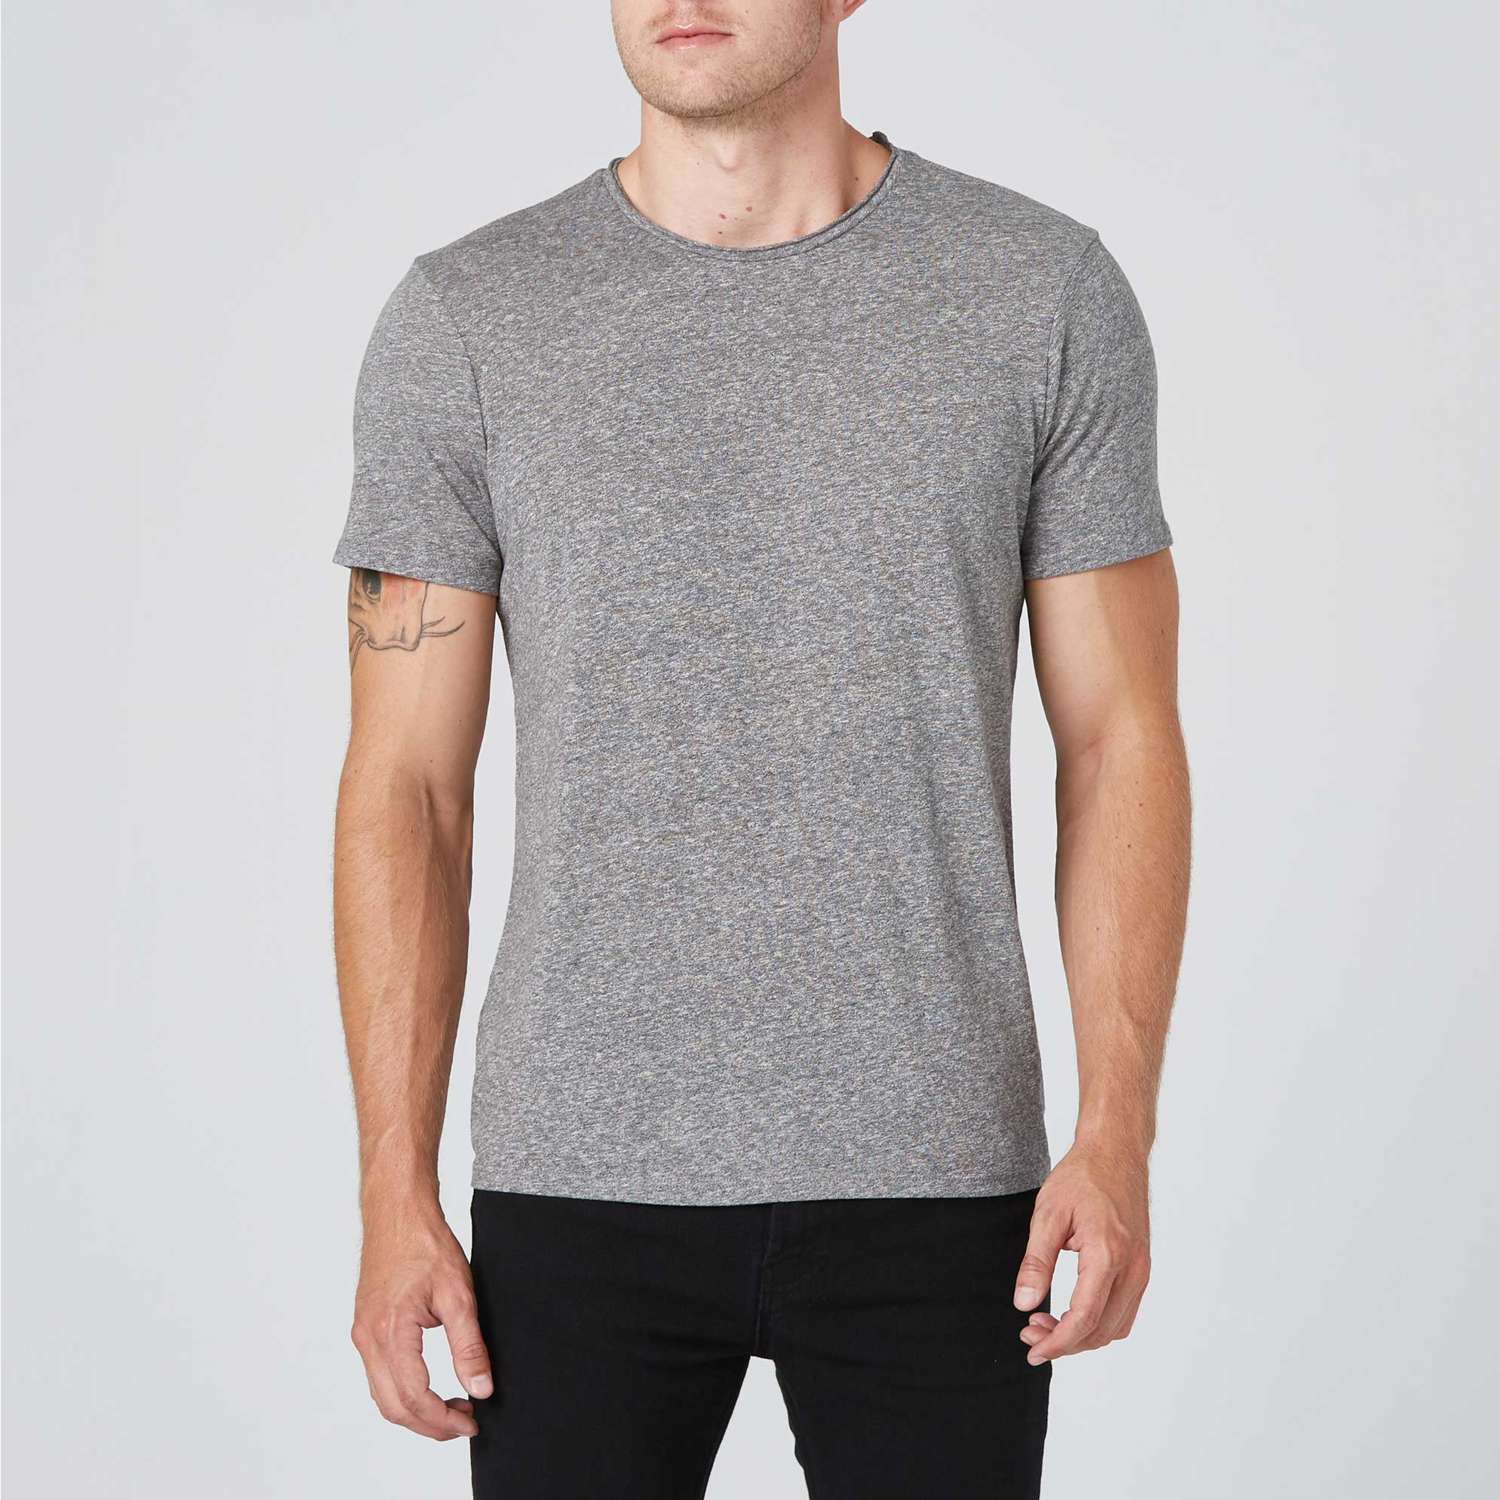 38a68eb330c4 Mens Modern Crew Neck Tee In Heather Grey $30 | DSTLD